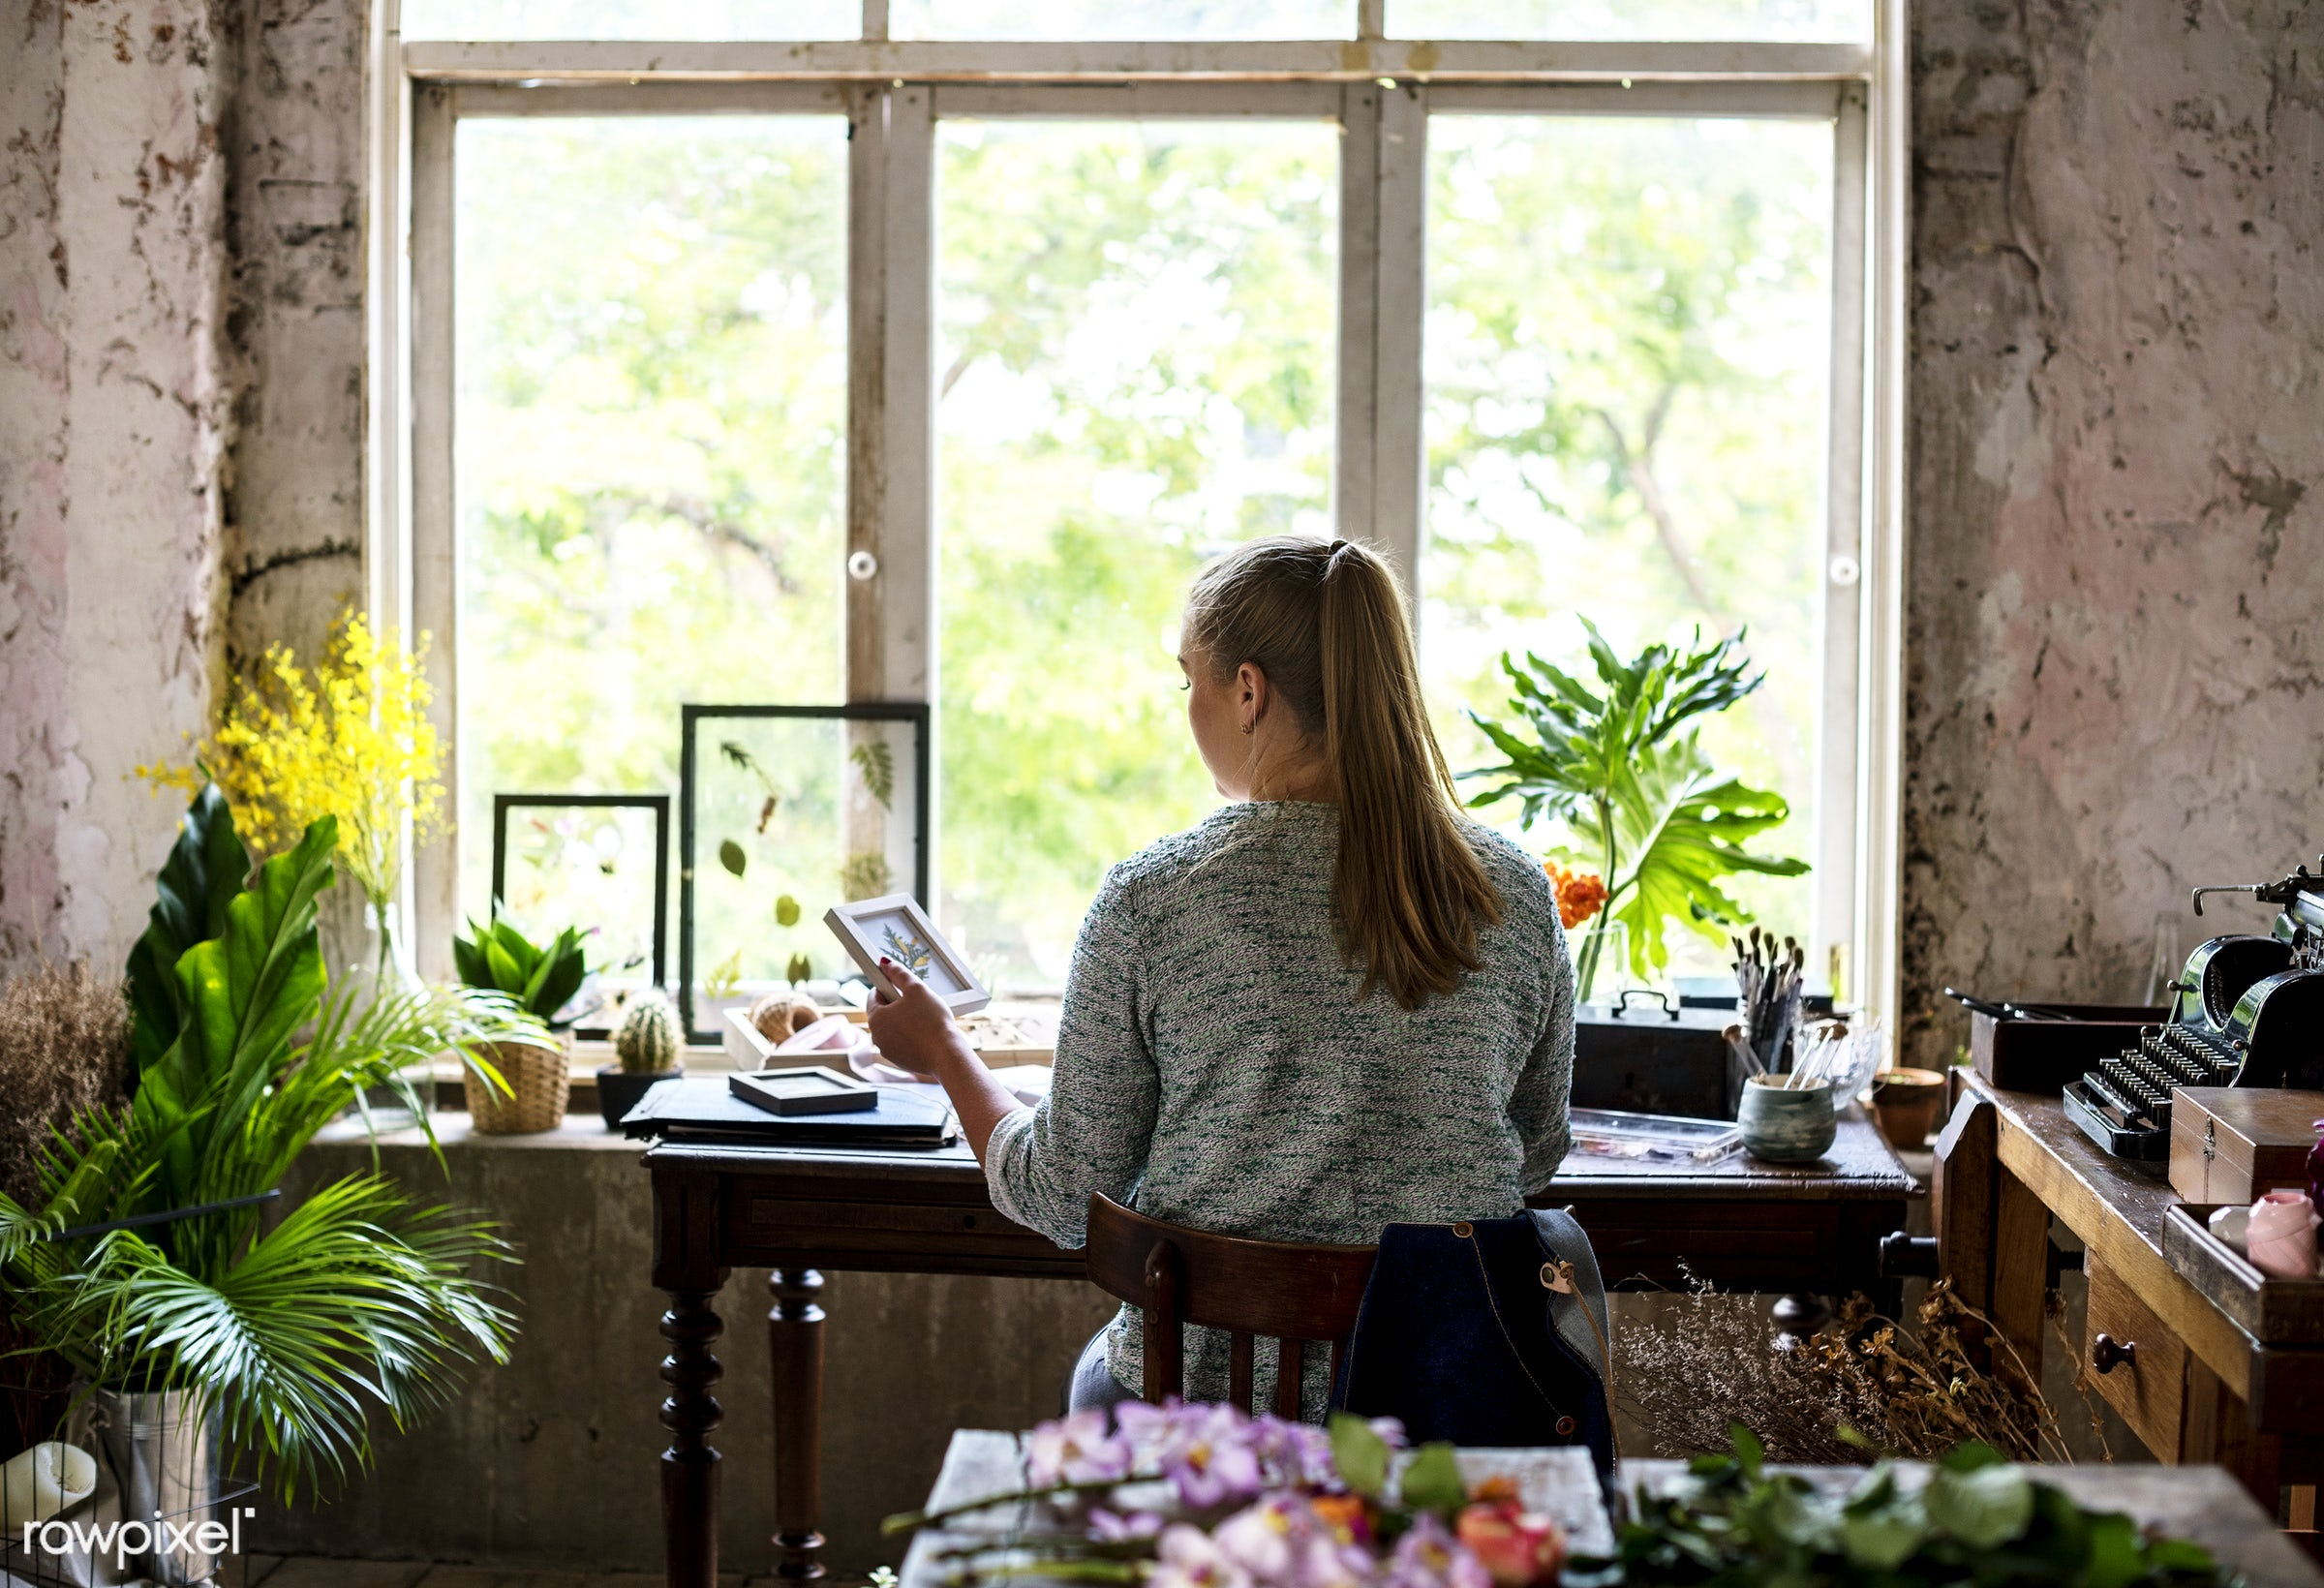 person, store, small business, pressed flowers, indoors, self-employed, business, nature, woman, casual, working, vintage,...